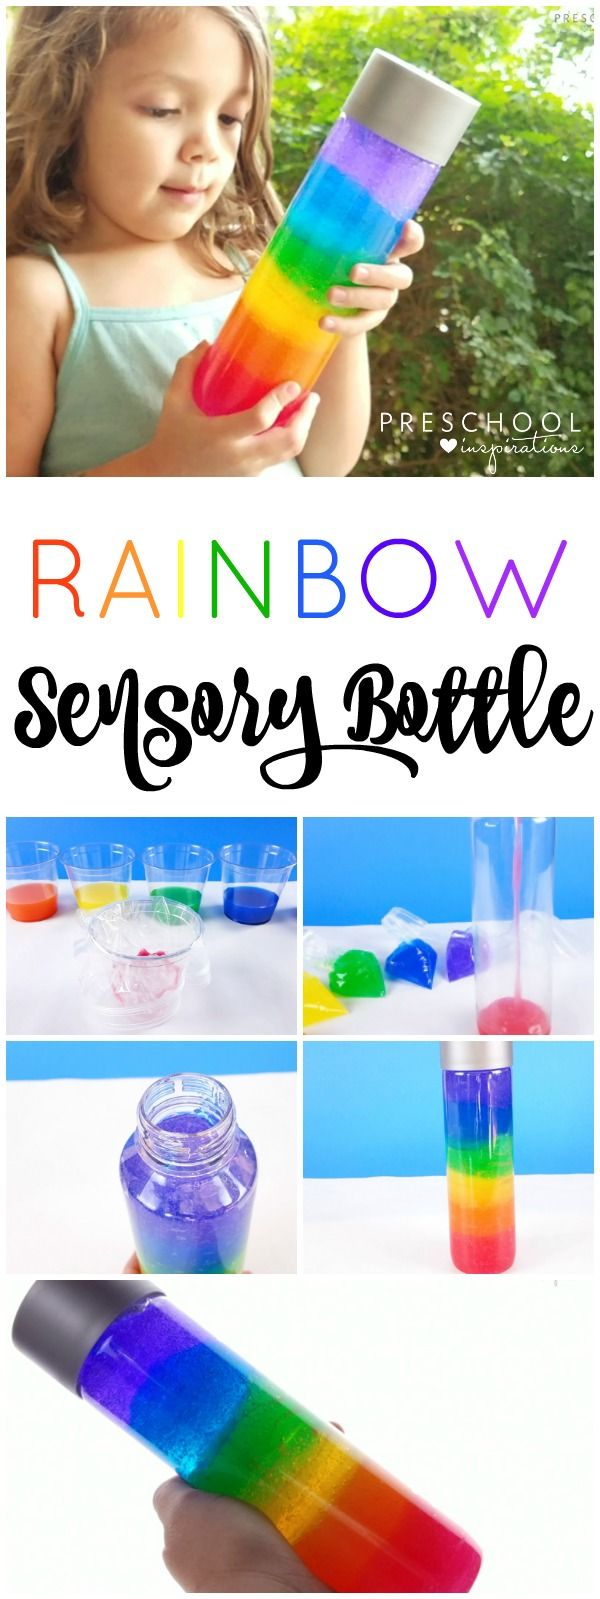 Rainbow Discovery Bottle for Sensory Play and Exploration